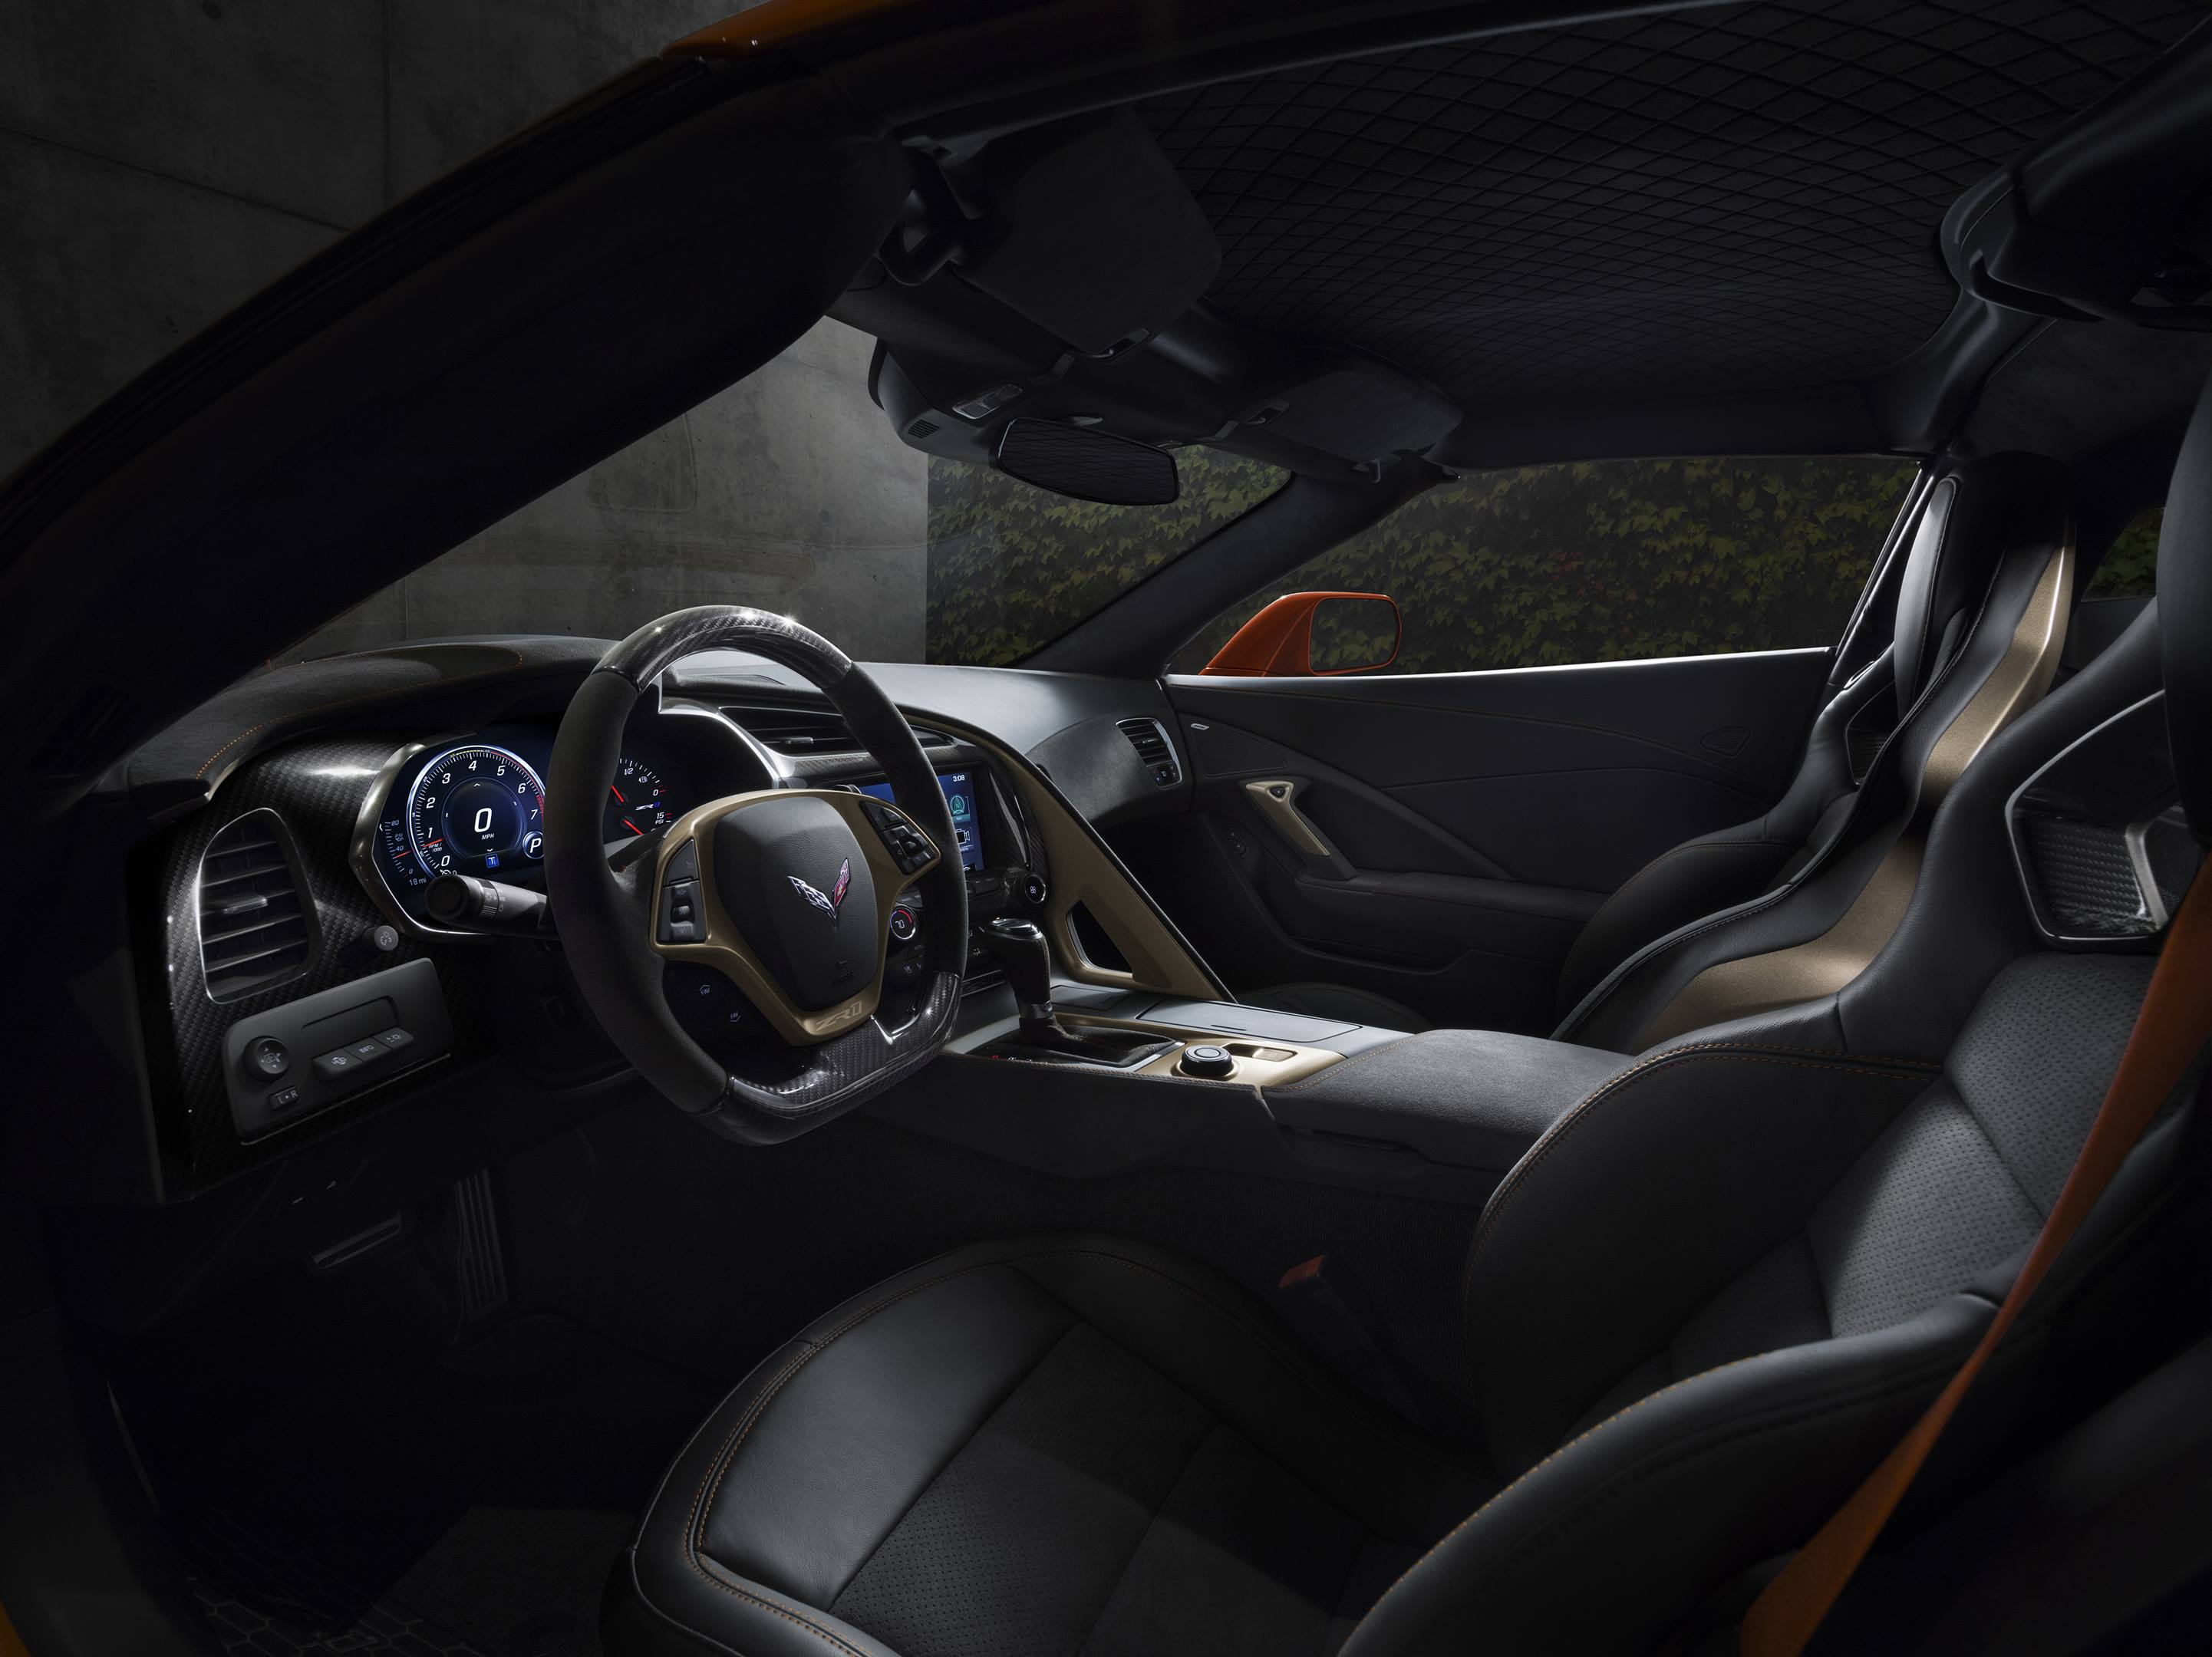 2019 Chevrolet Corvette ZR1  Interior detail shot